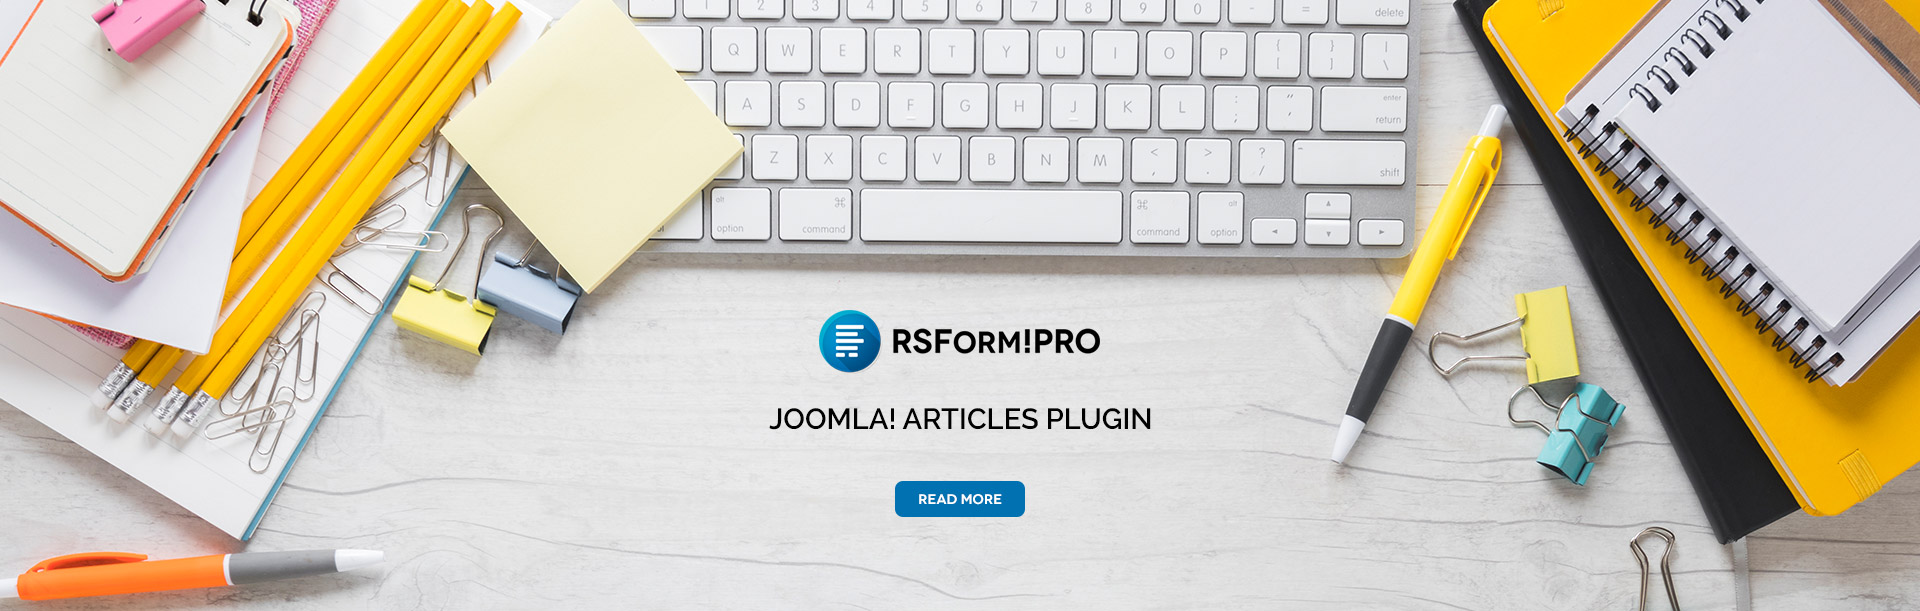 RSForm!Pro Create Articles Plugin